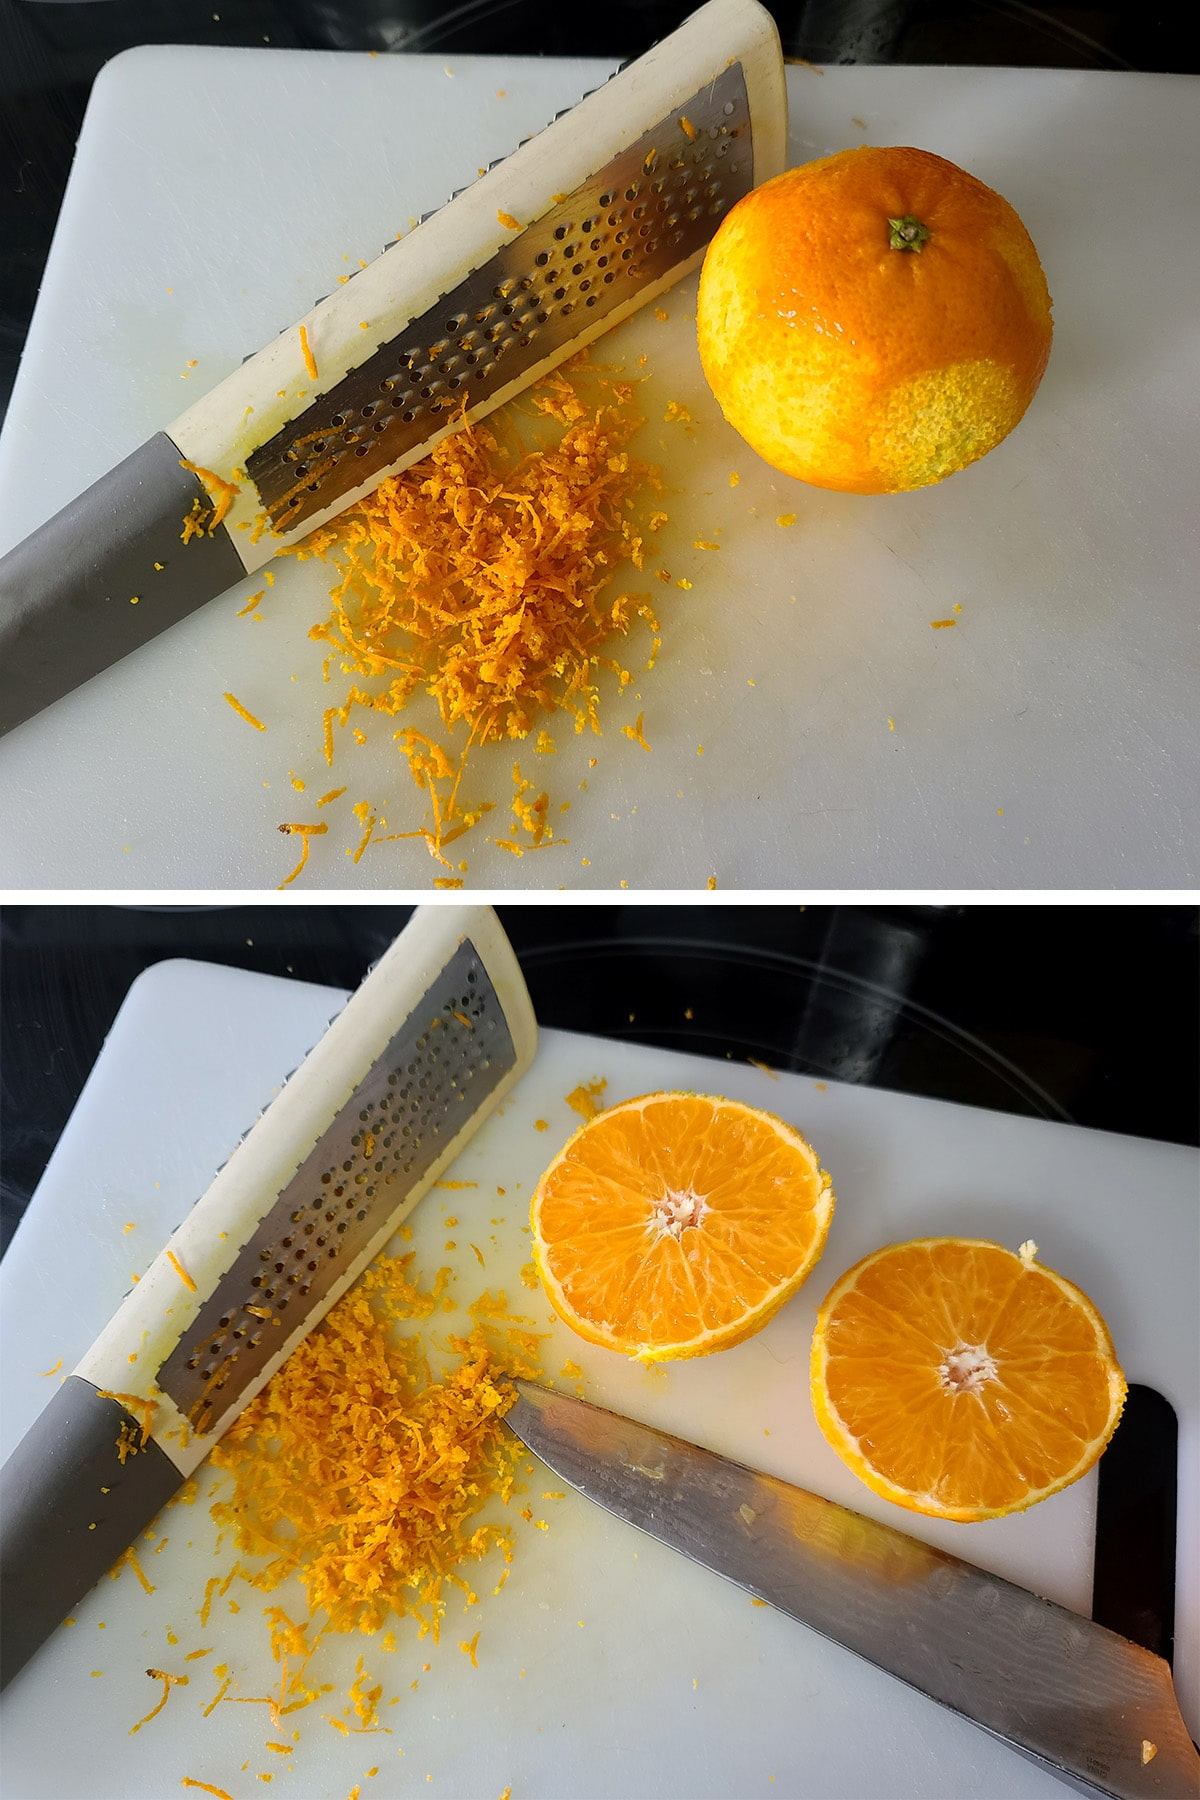 An orange being zested on a white cutting board.